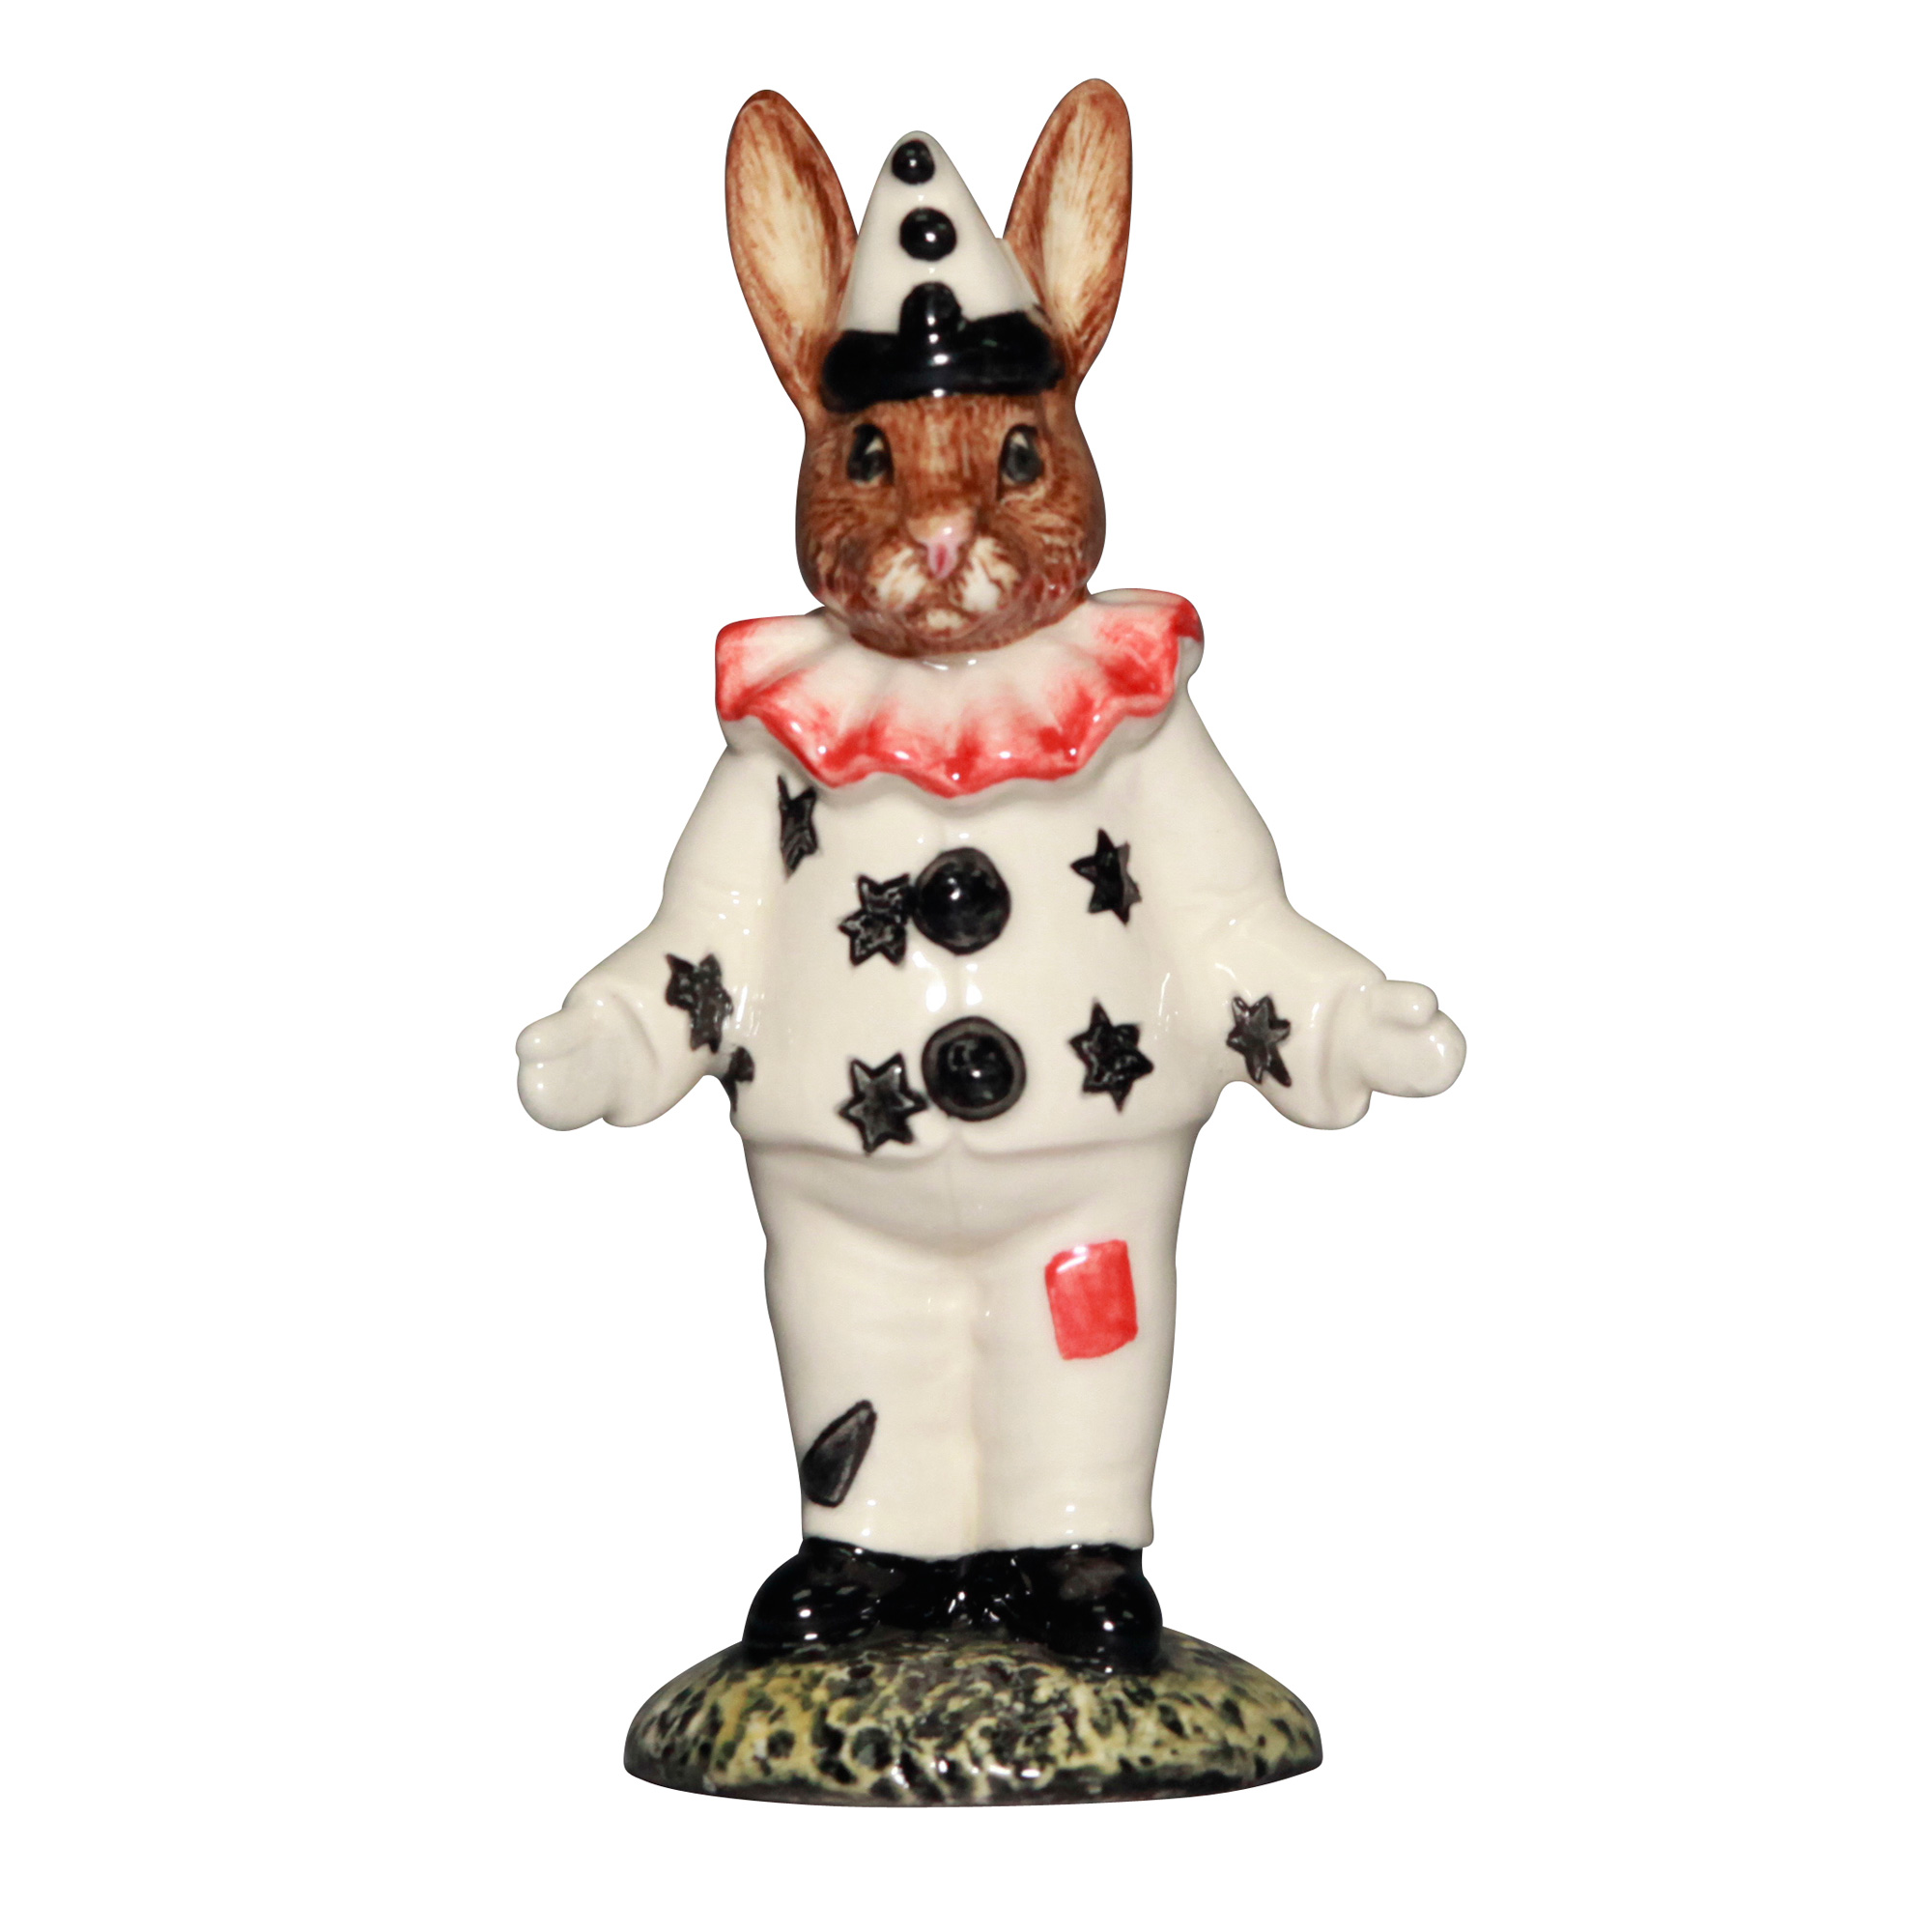 Clown DB128 - Royal Doulton Bunnykins